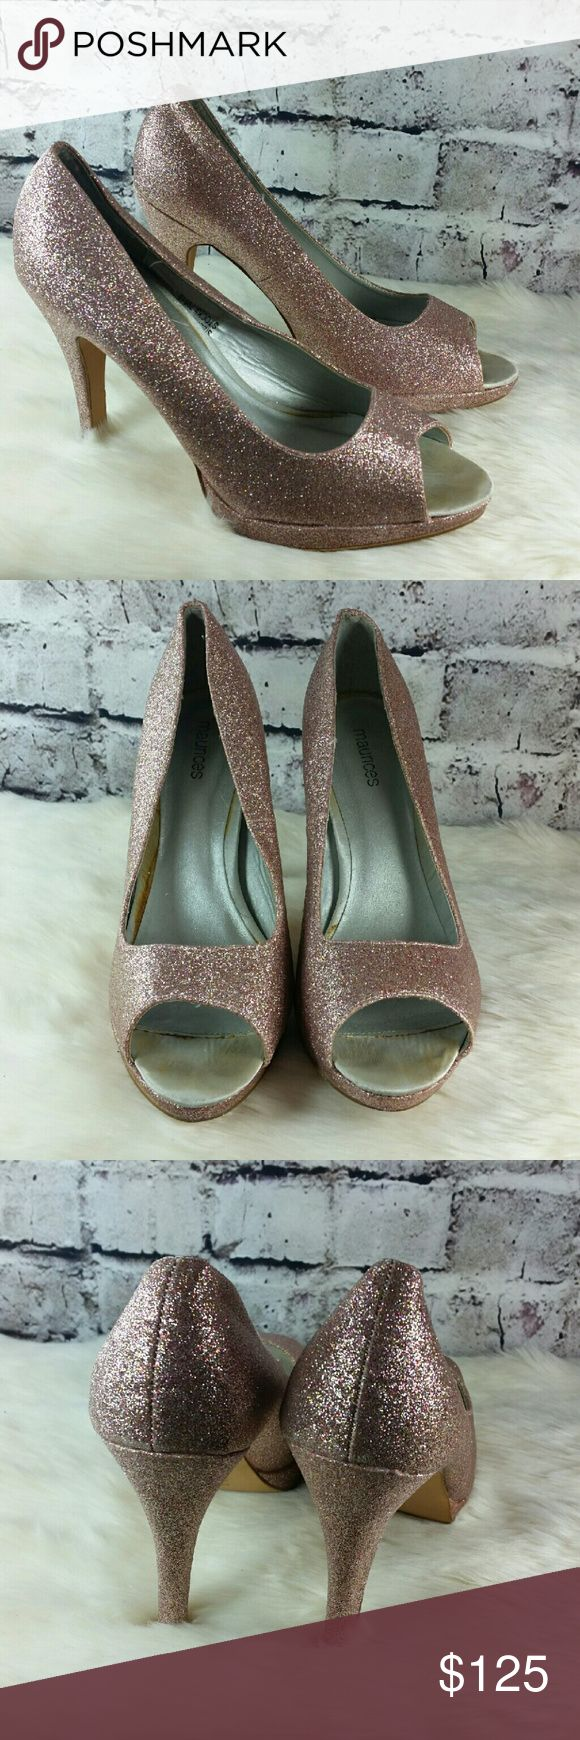 Maurices pink glitter peep toe platform pumps. Maurices pink glitter peep toe platform pumps. Some minor wear on insoles. Very pretty!  Heels are 4.5 inches Maurices Shoes Heels